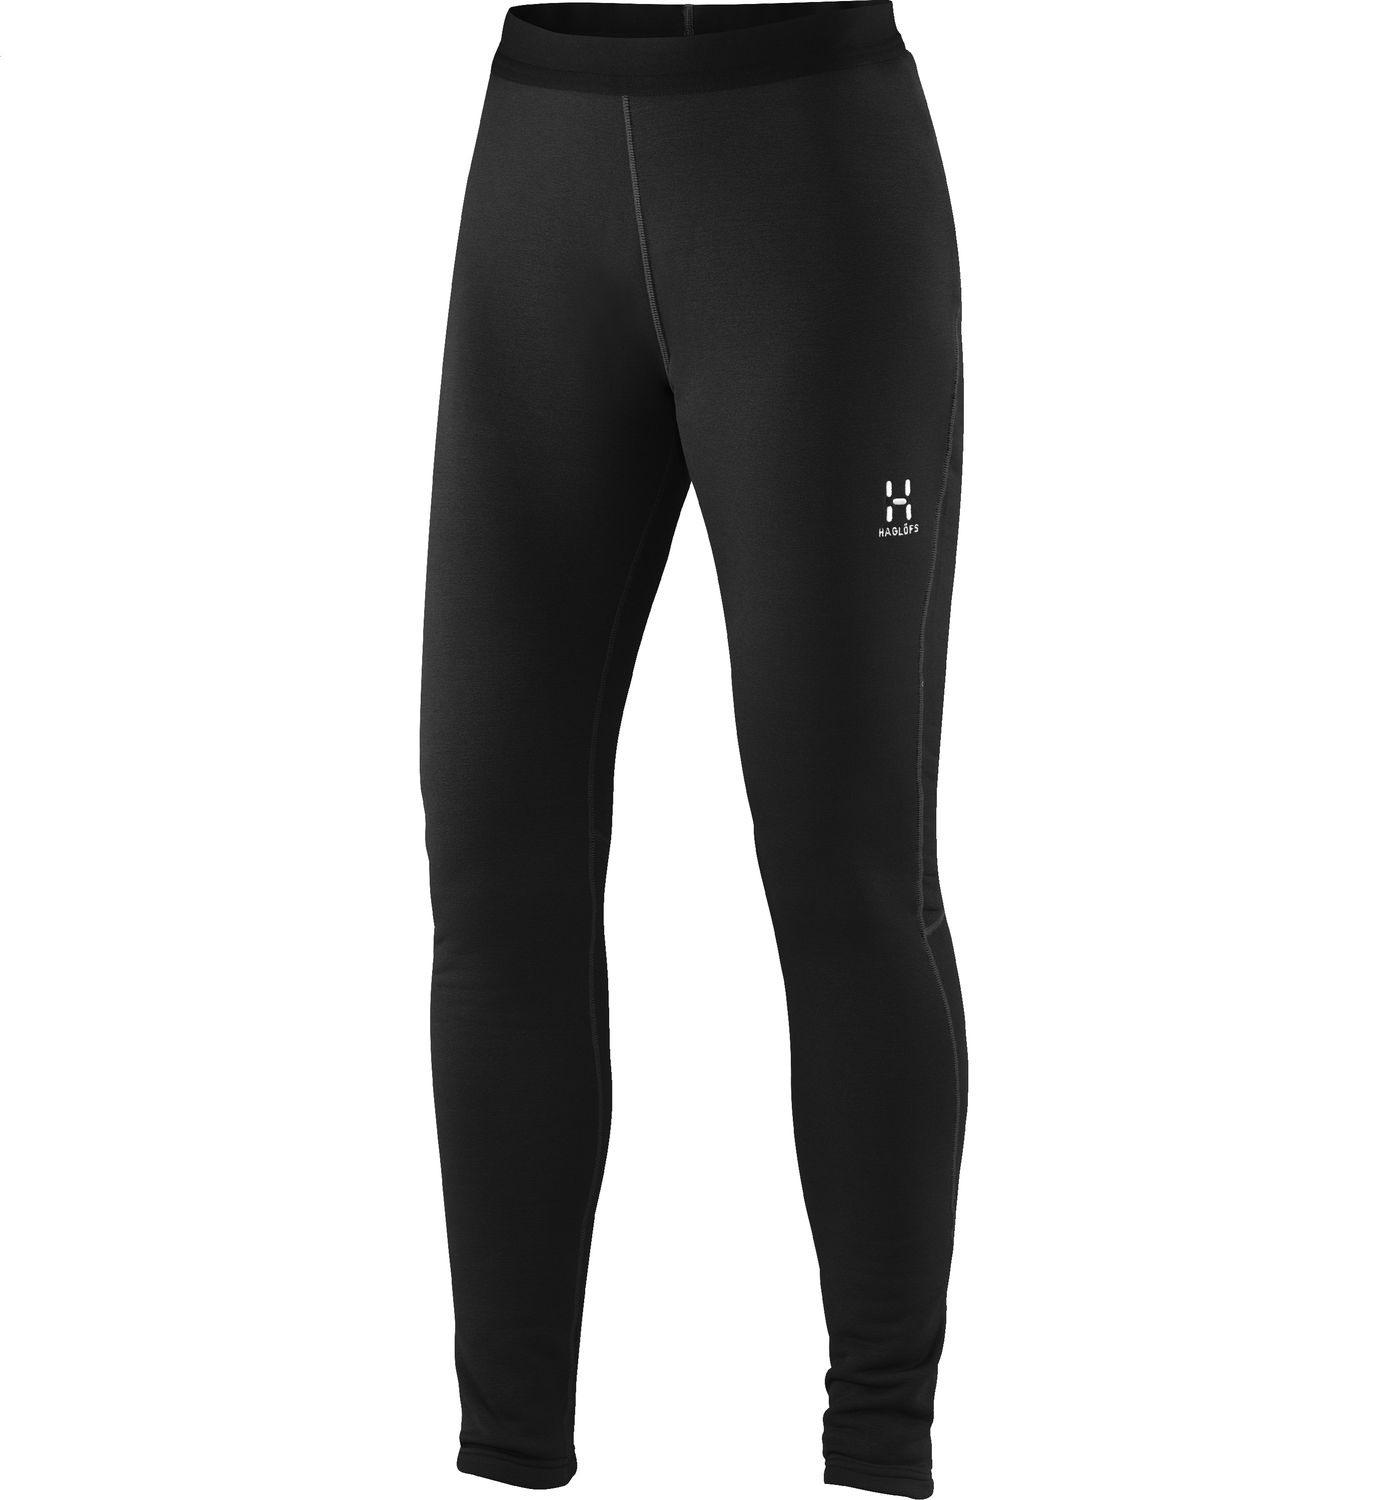 Black Fleece Leggings - Haglofs